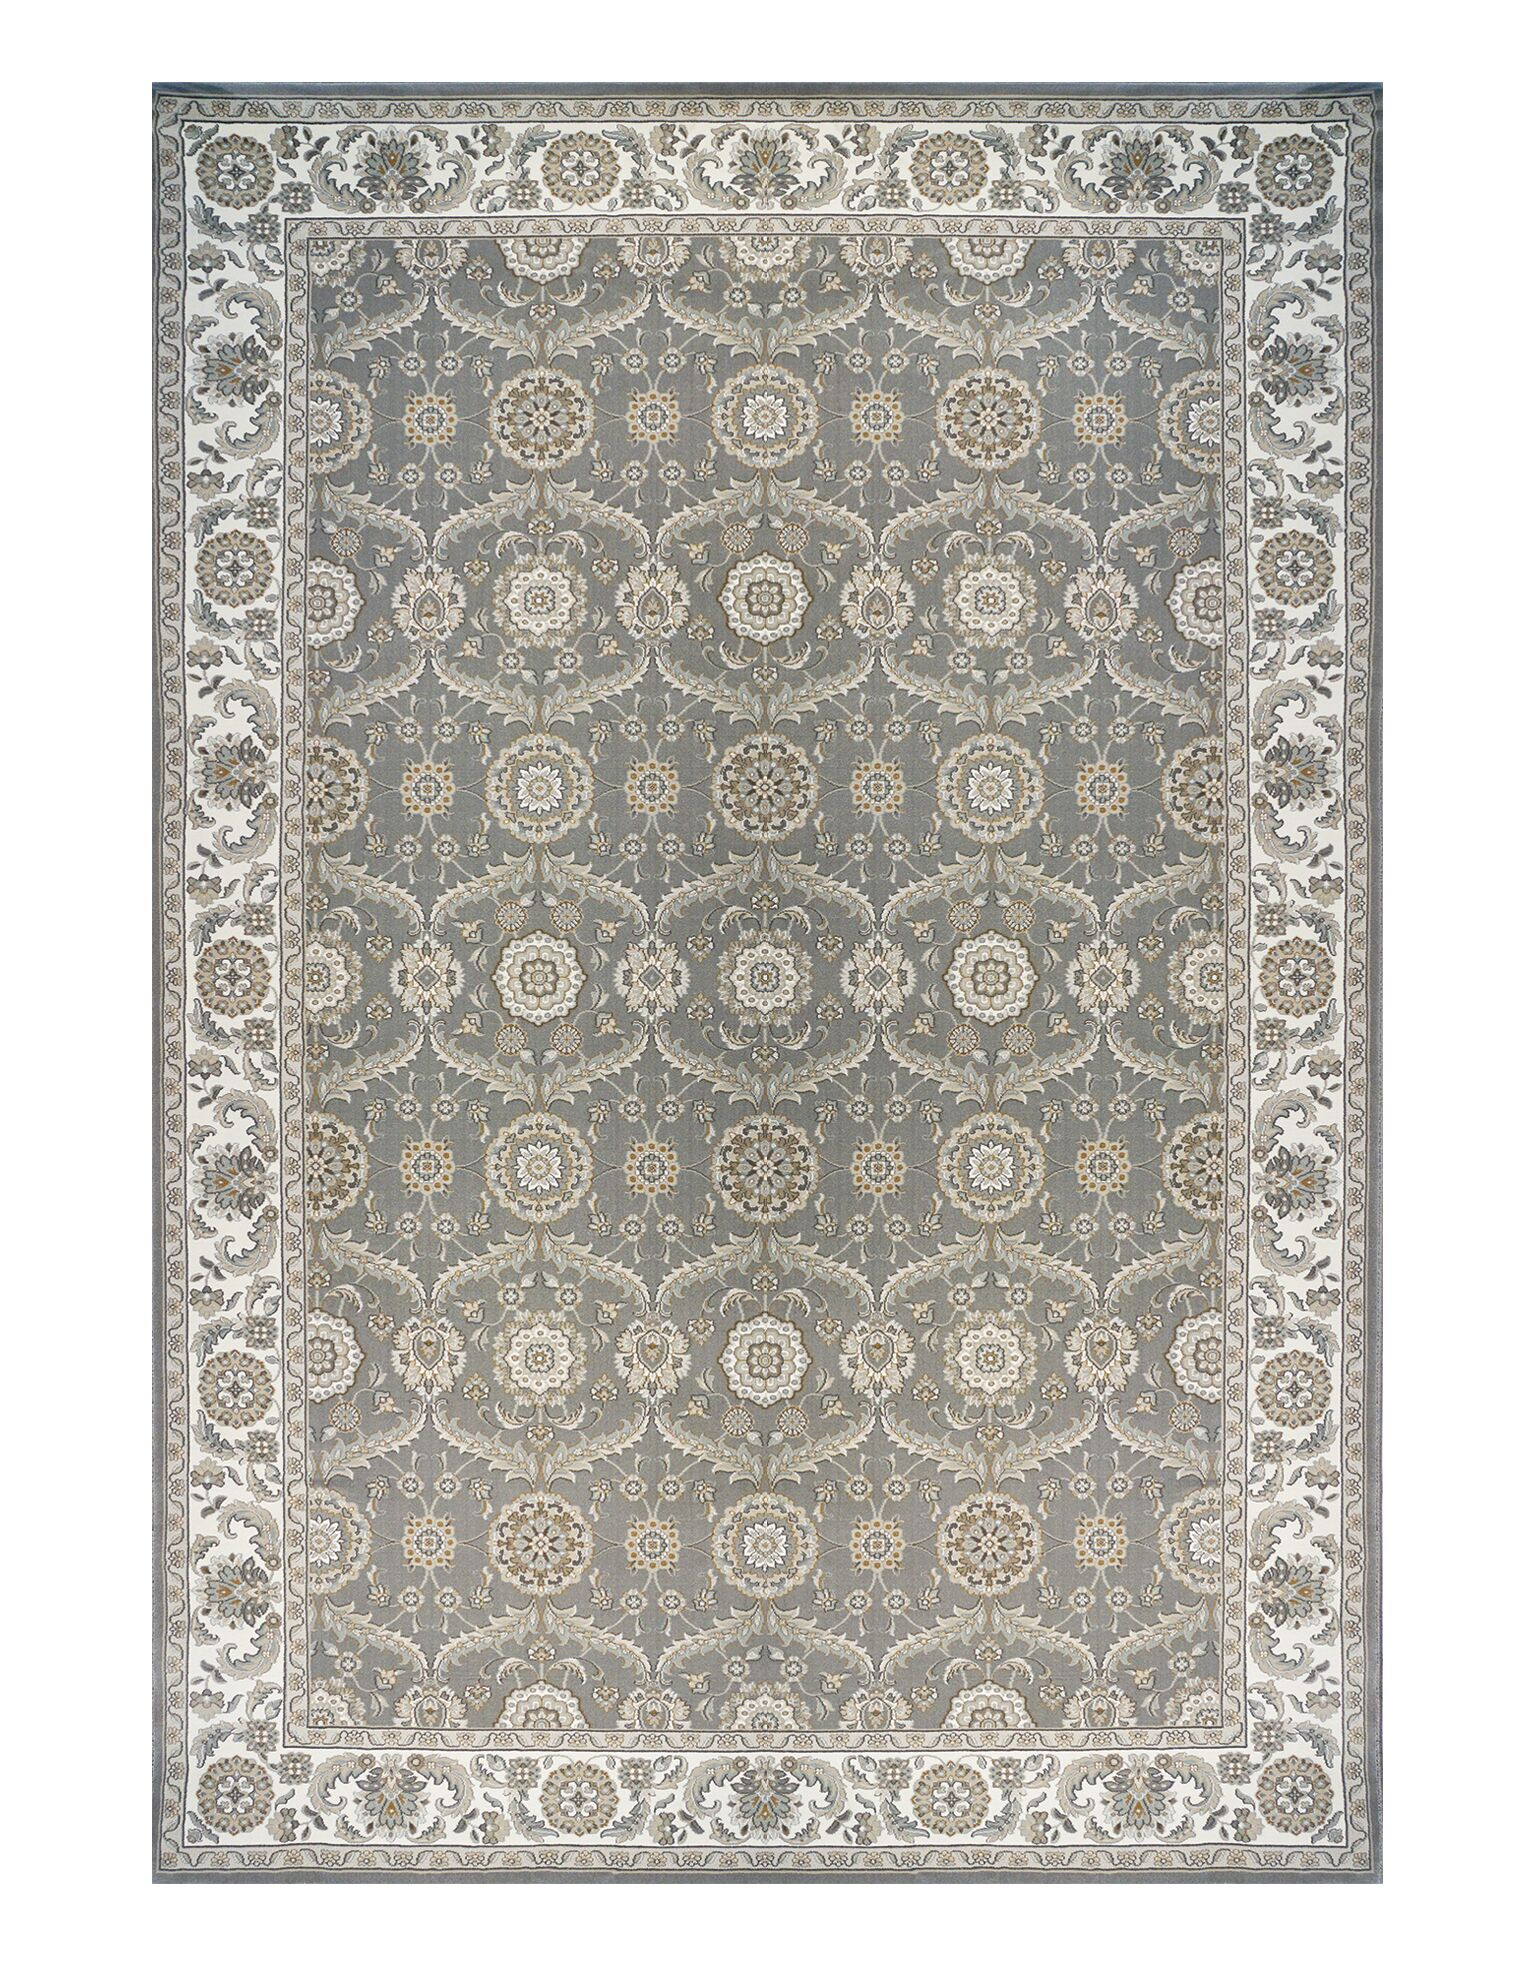 Yerby Gray Area Rug Rug Size: 6'6